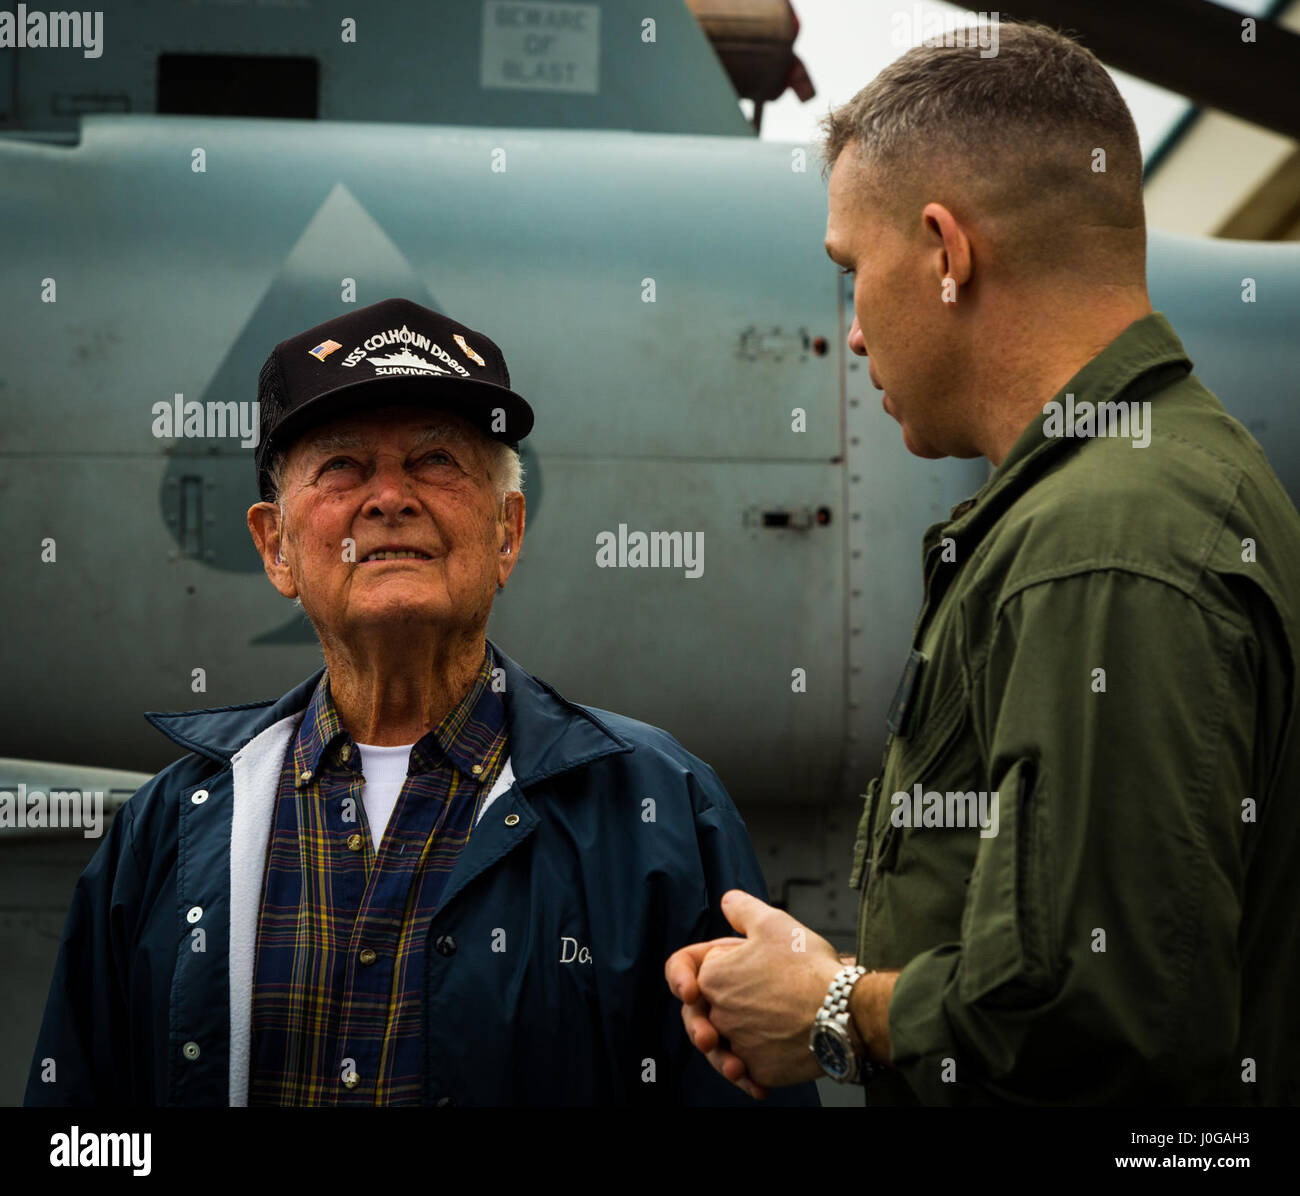 bryan g swenson gives donald irwin a united states navy world war ii veteran a tour of the mv 22 osprey april 7 2017 on marine corps air station